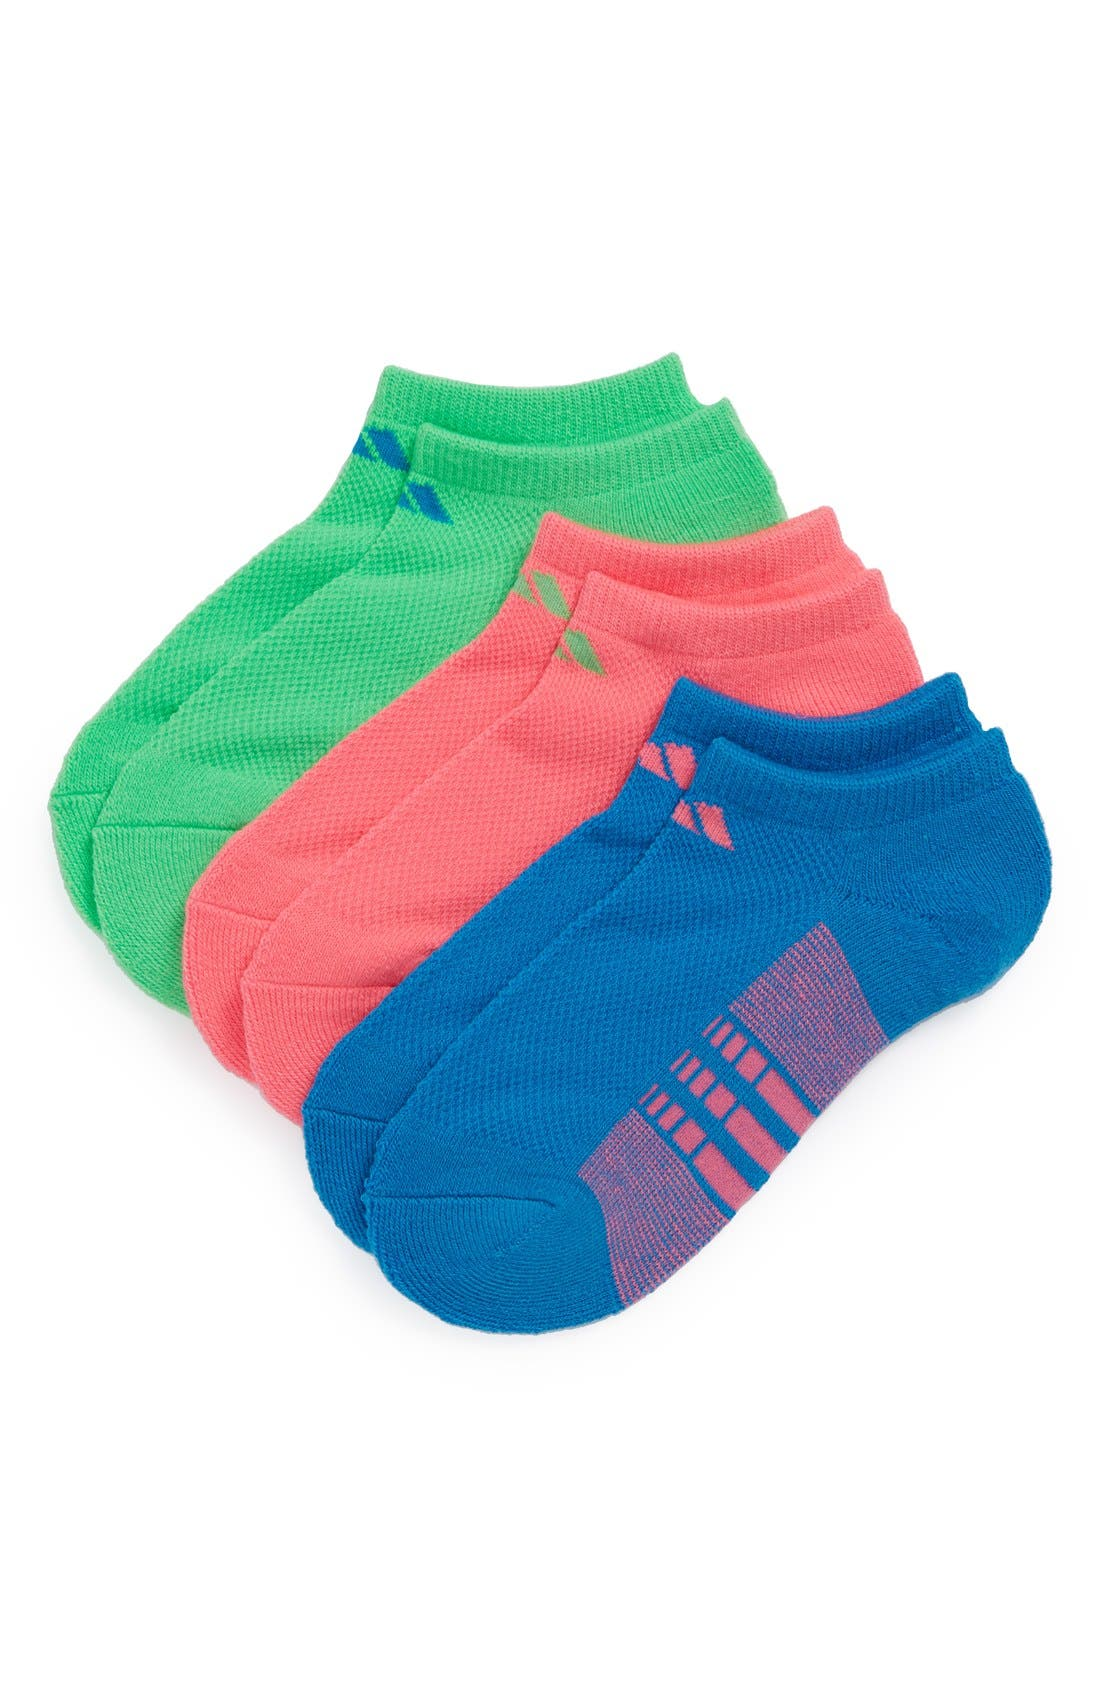 Alternate Image 1 Selected - adidas Cushioned No-Show Socks (3-Pack) (Little Kid & Big Kid)